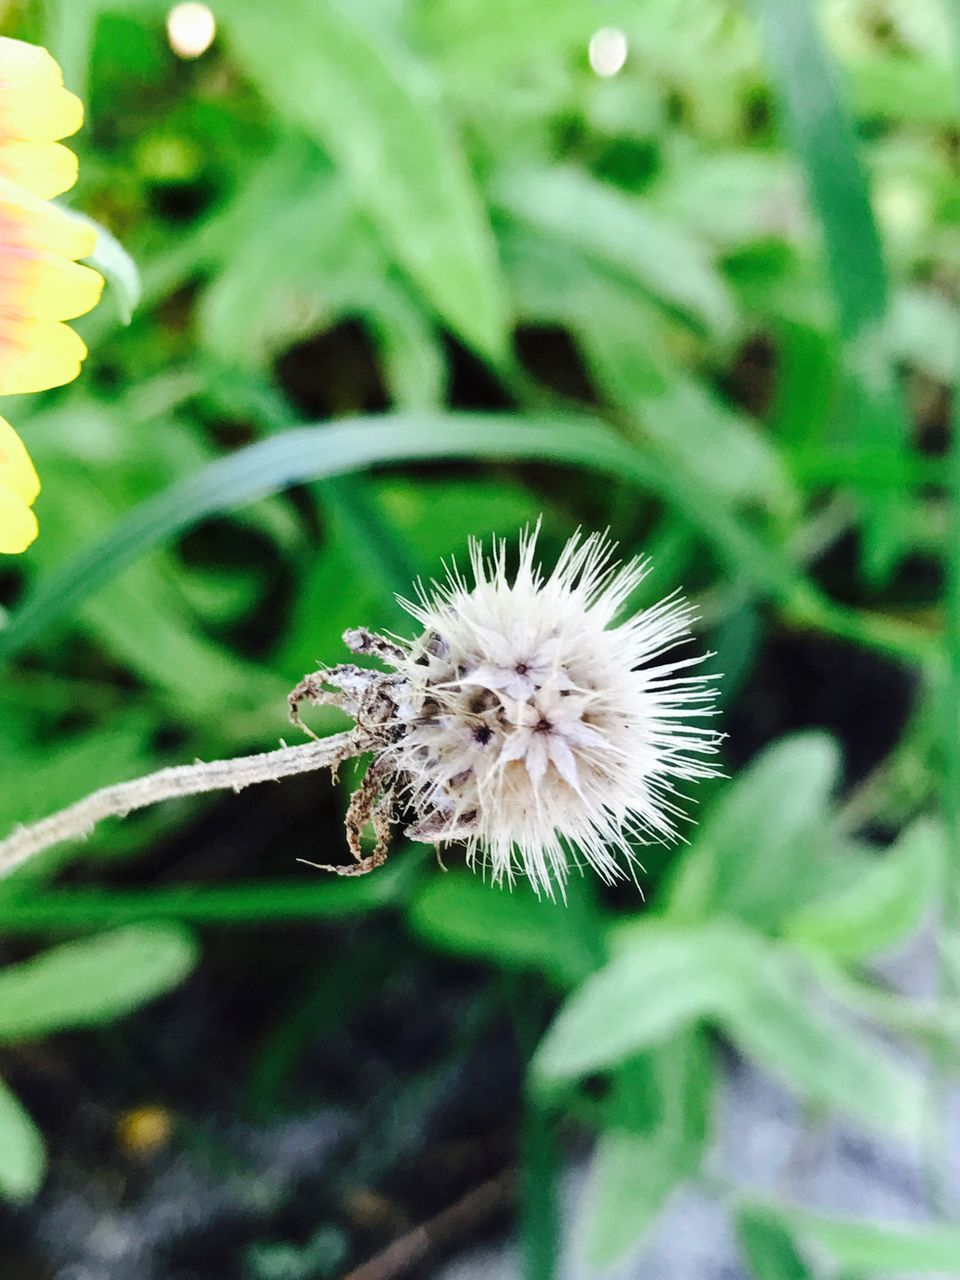 flower, nature, close-up, focus on foreground, fragility, plant, growth, no people, outdoors, day, insect, one animal, flower head, animal themes, beauty in nature, grass, freshness